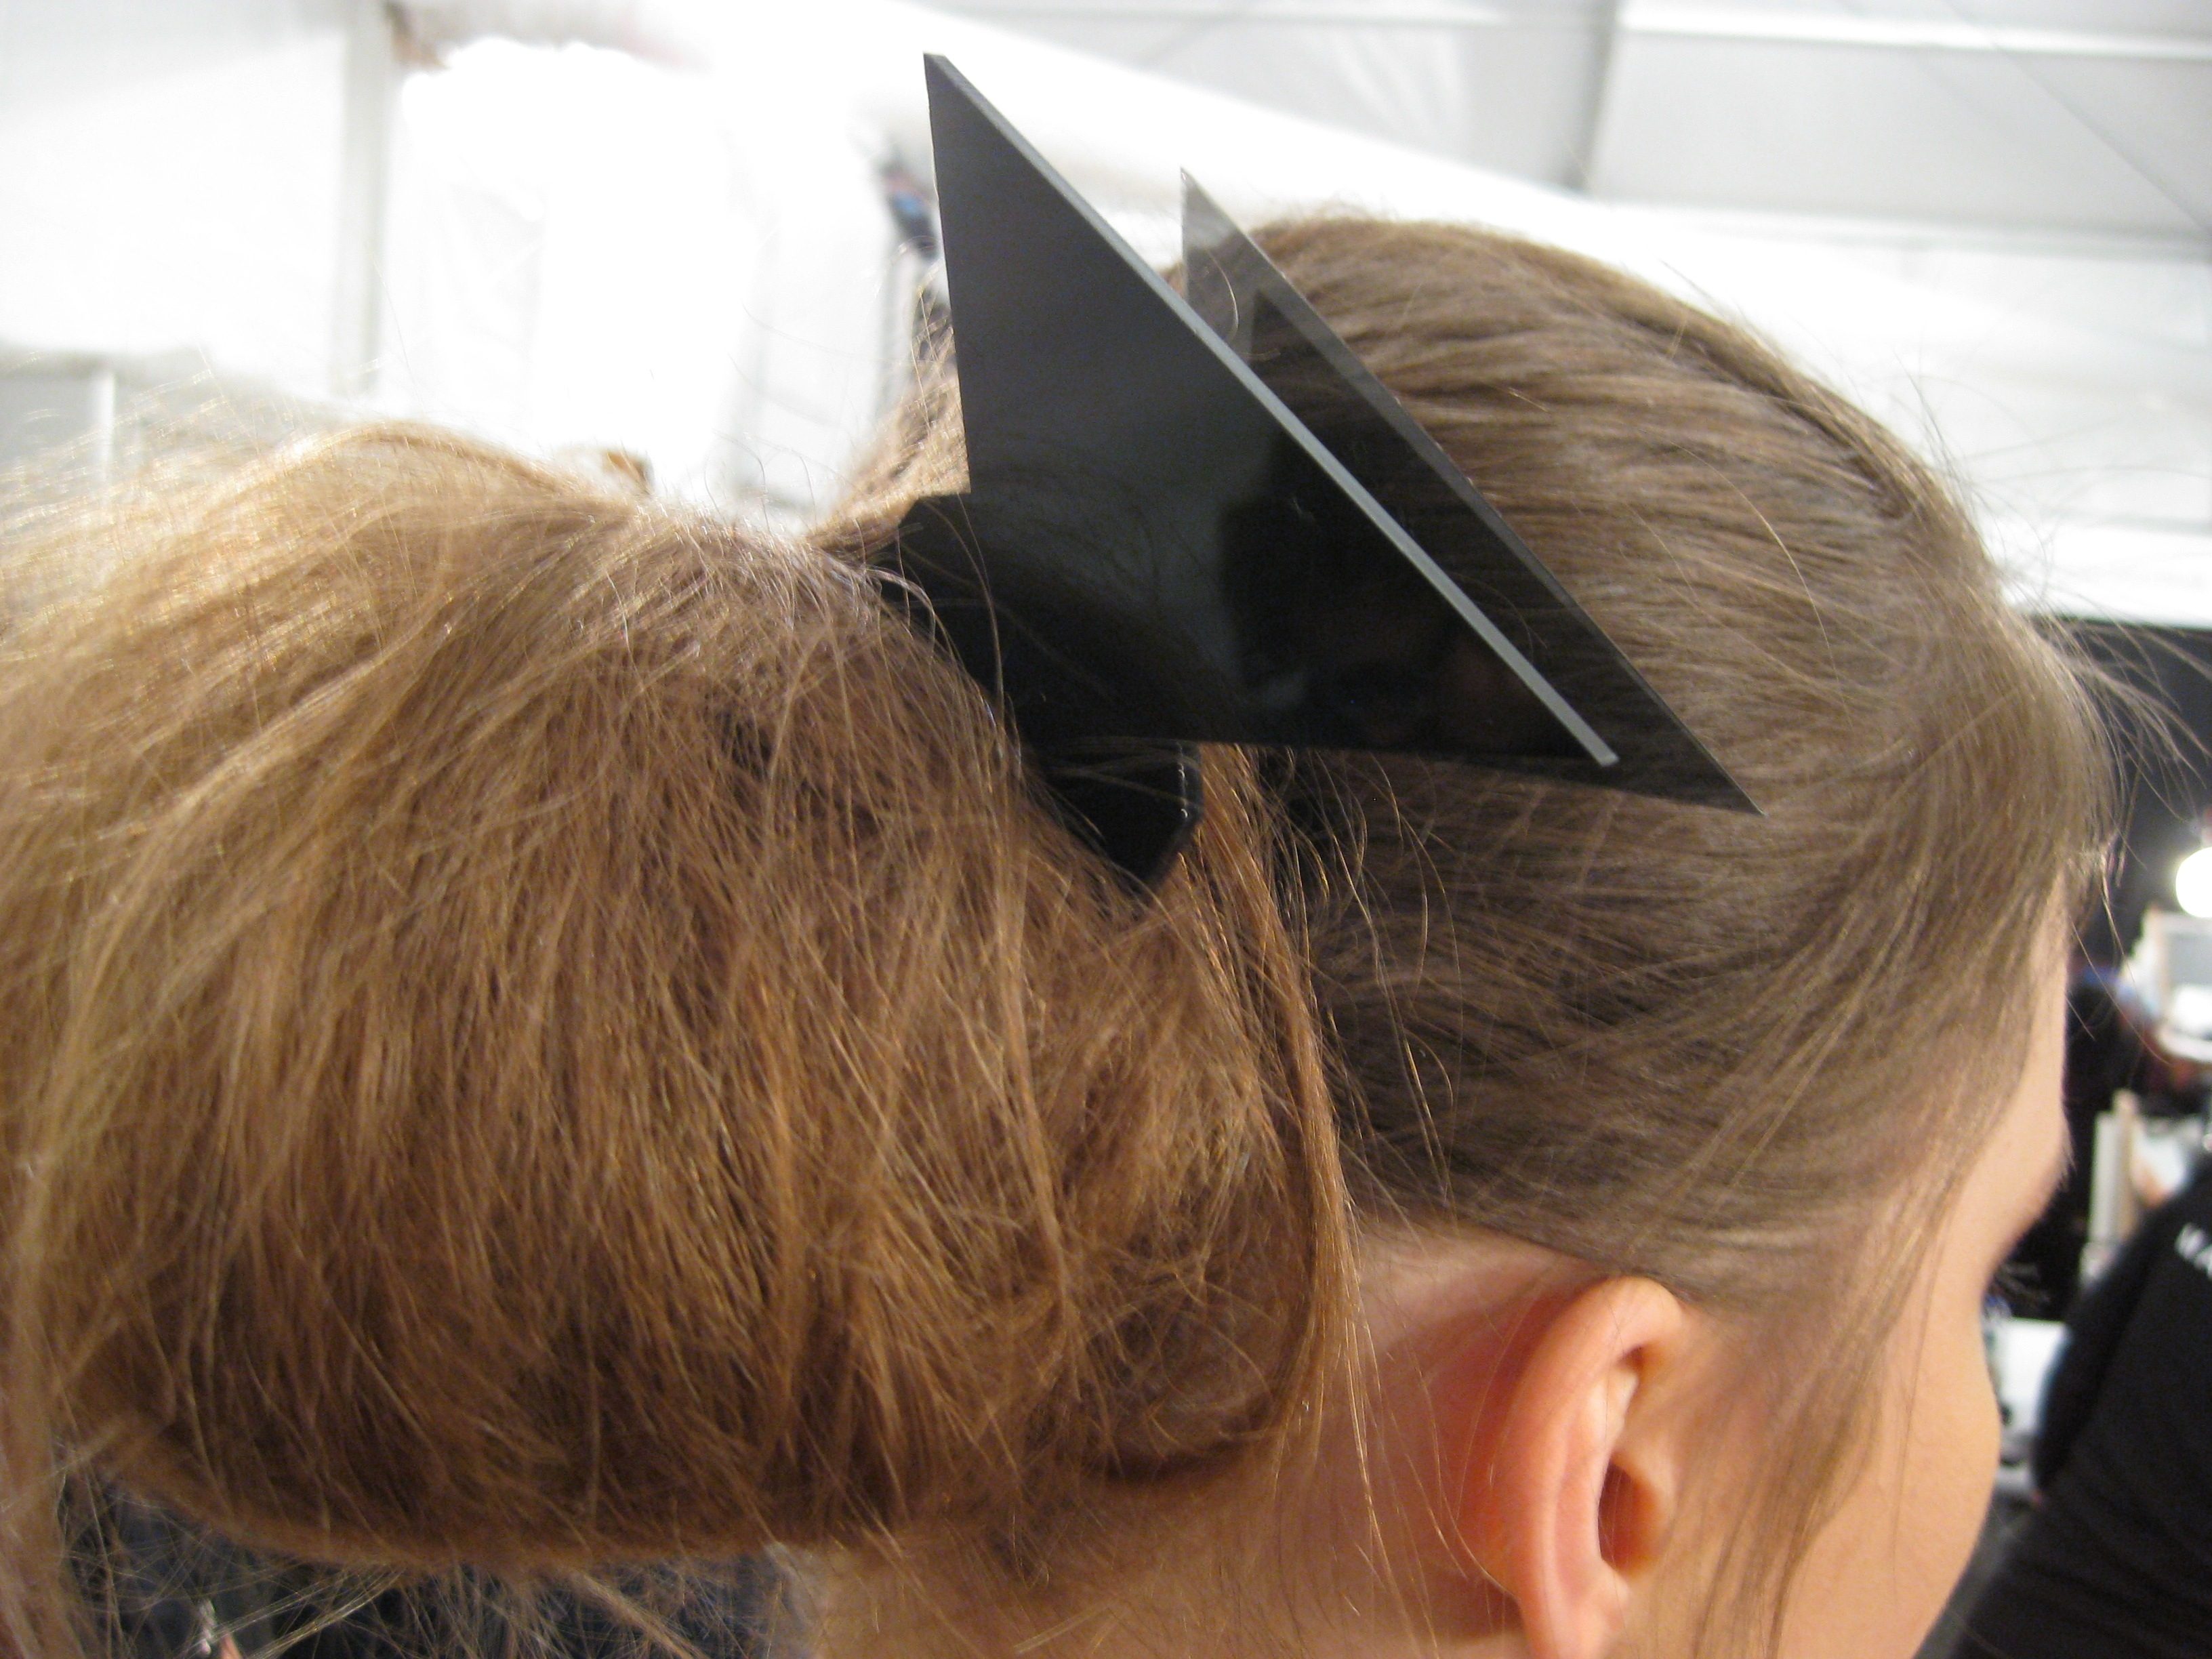 The finishing touch: a modern hair accessory by Cynthia Rowley